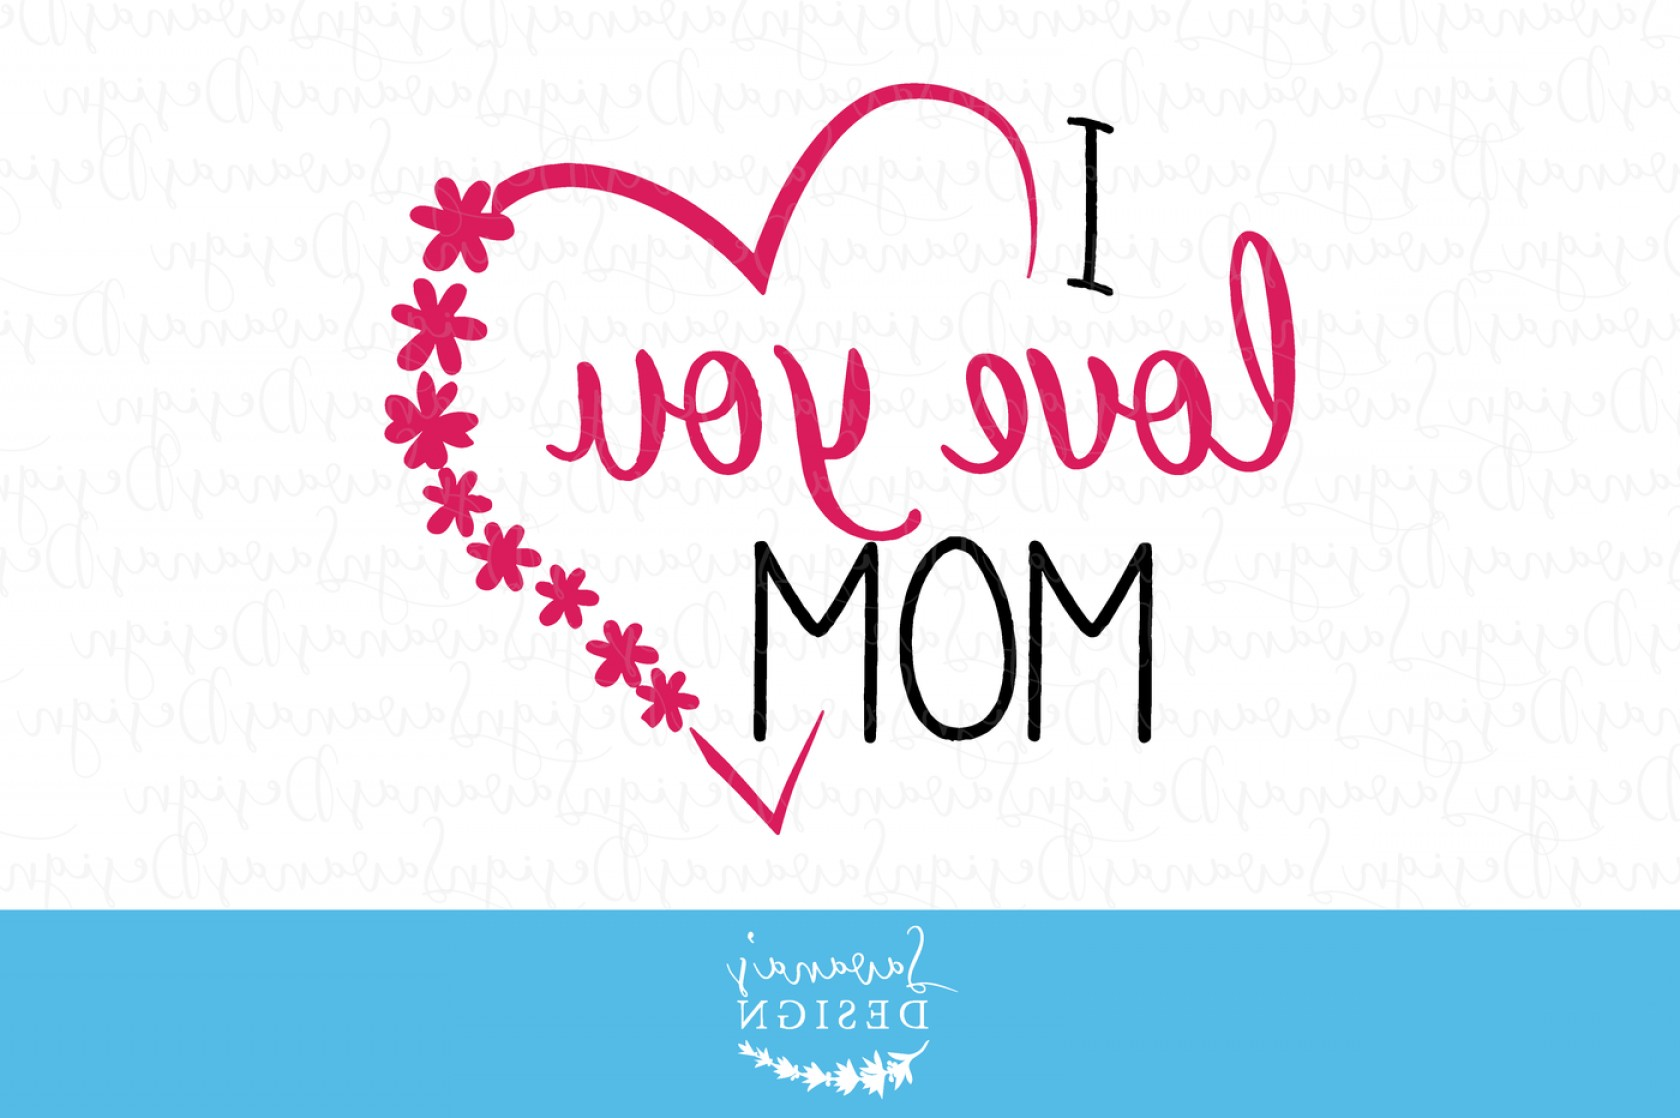 I Love You Mark Vector: I Love You Mom Svg I Love U Mom I Love You Mom Images Svg Card Files Etsy Svg Diy Mothers Day Mothers Day Eps Dxf Svg Png